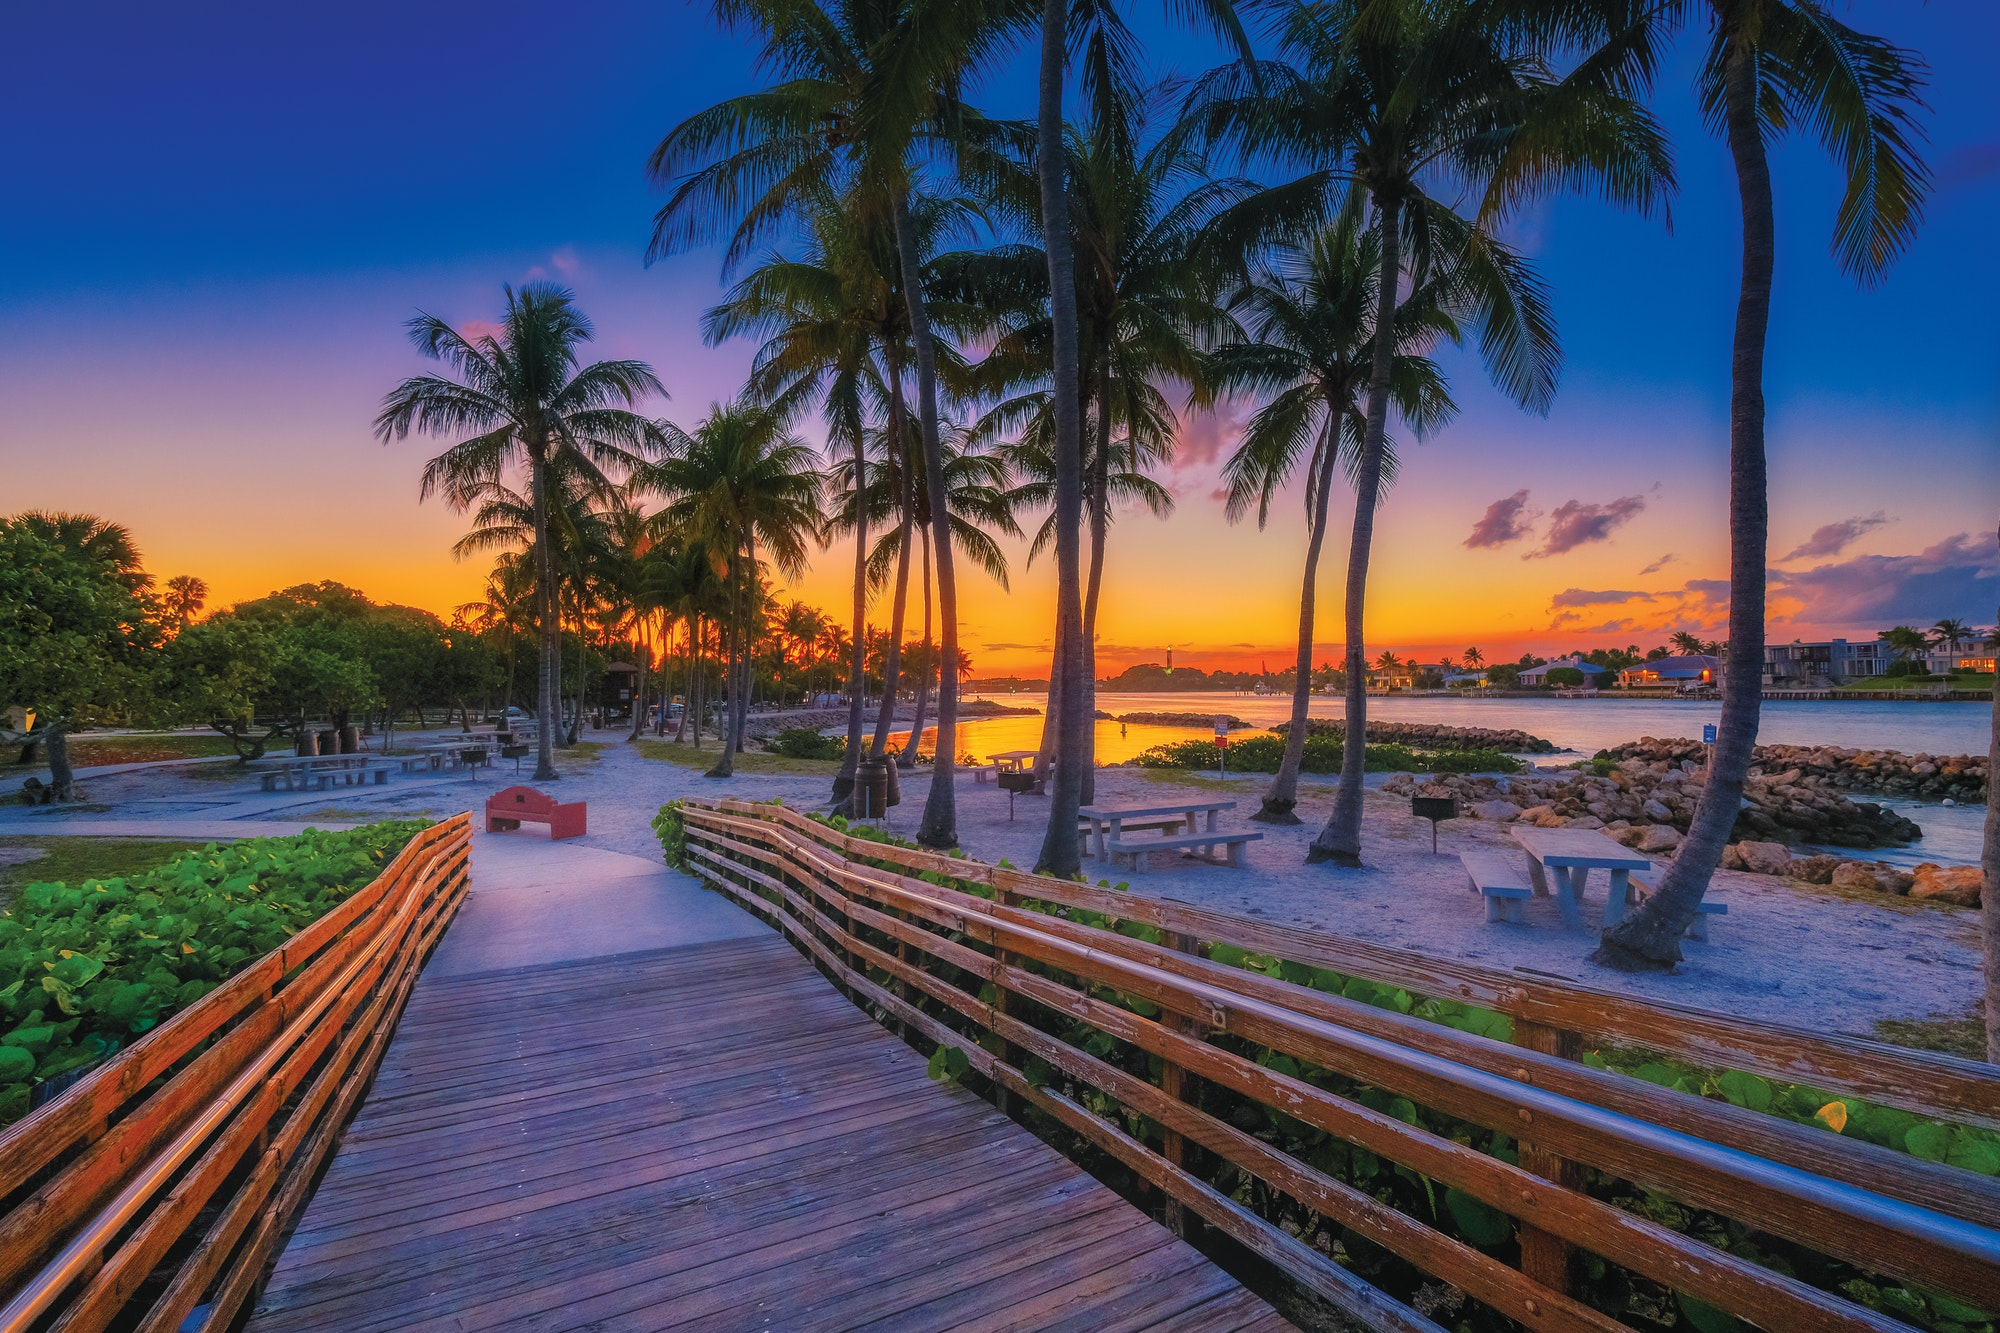 Image of boardwalk walkway with palm trees and yellow blue sunset in background